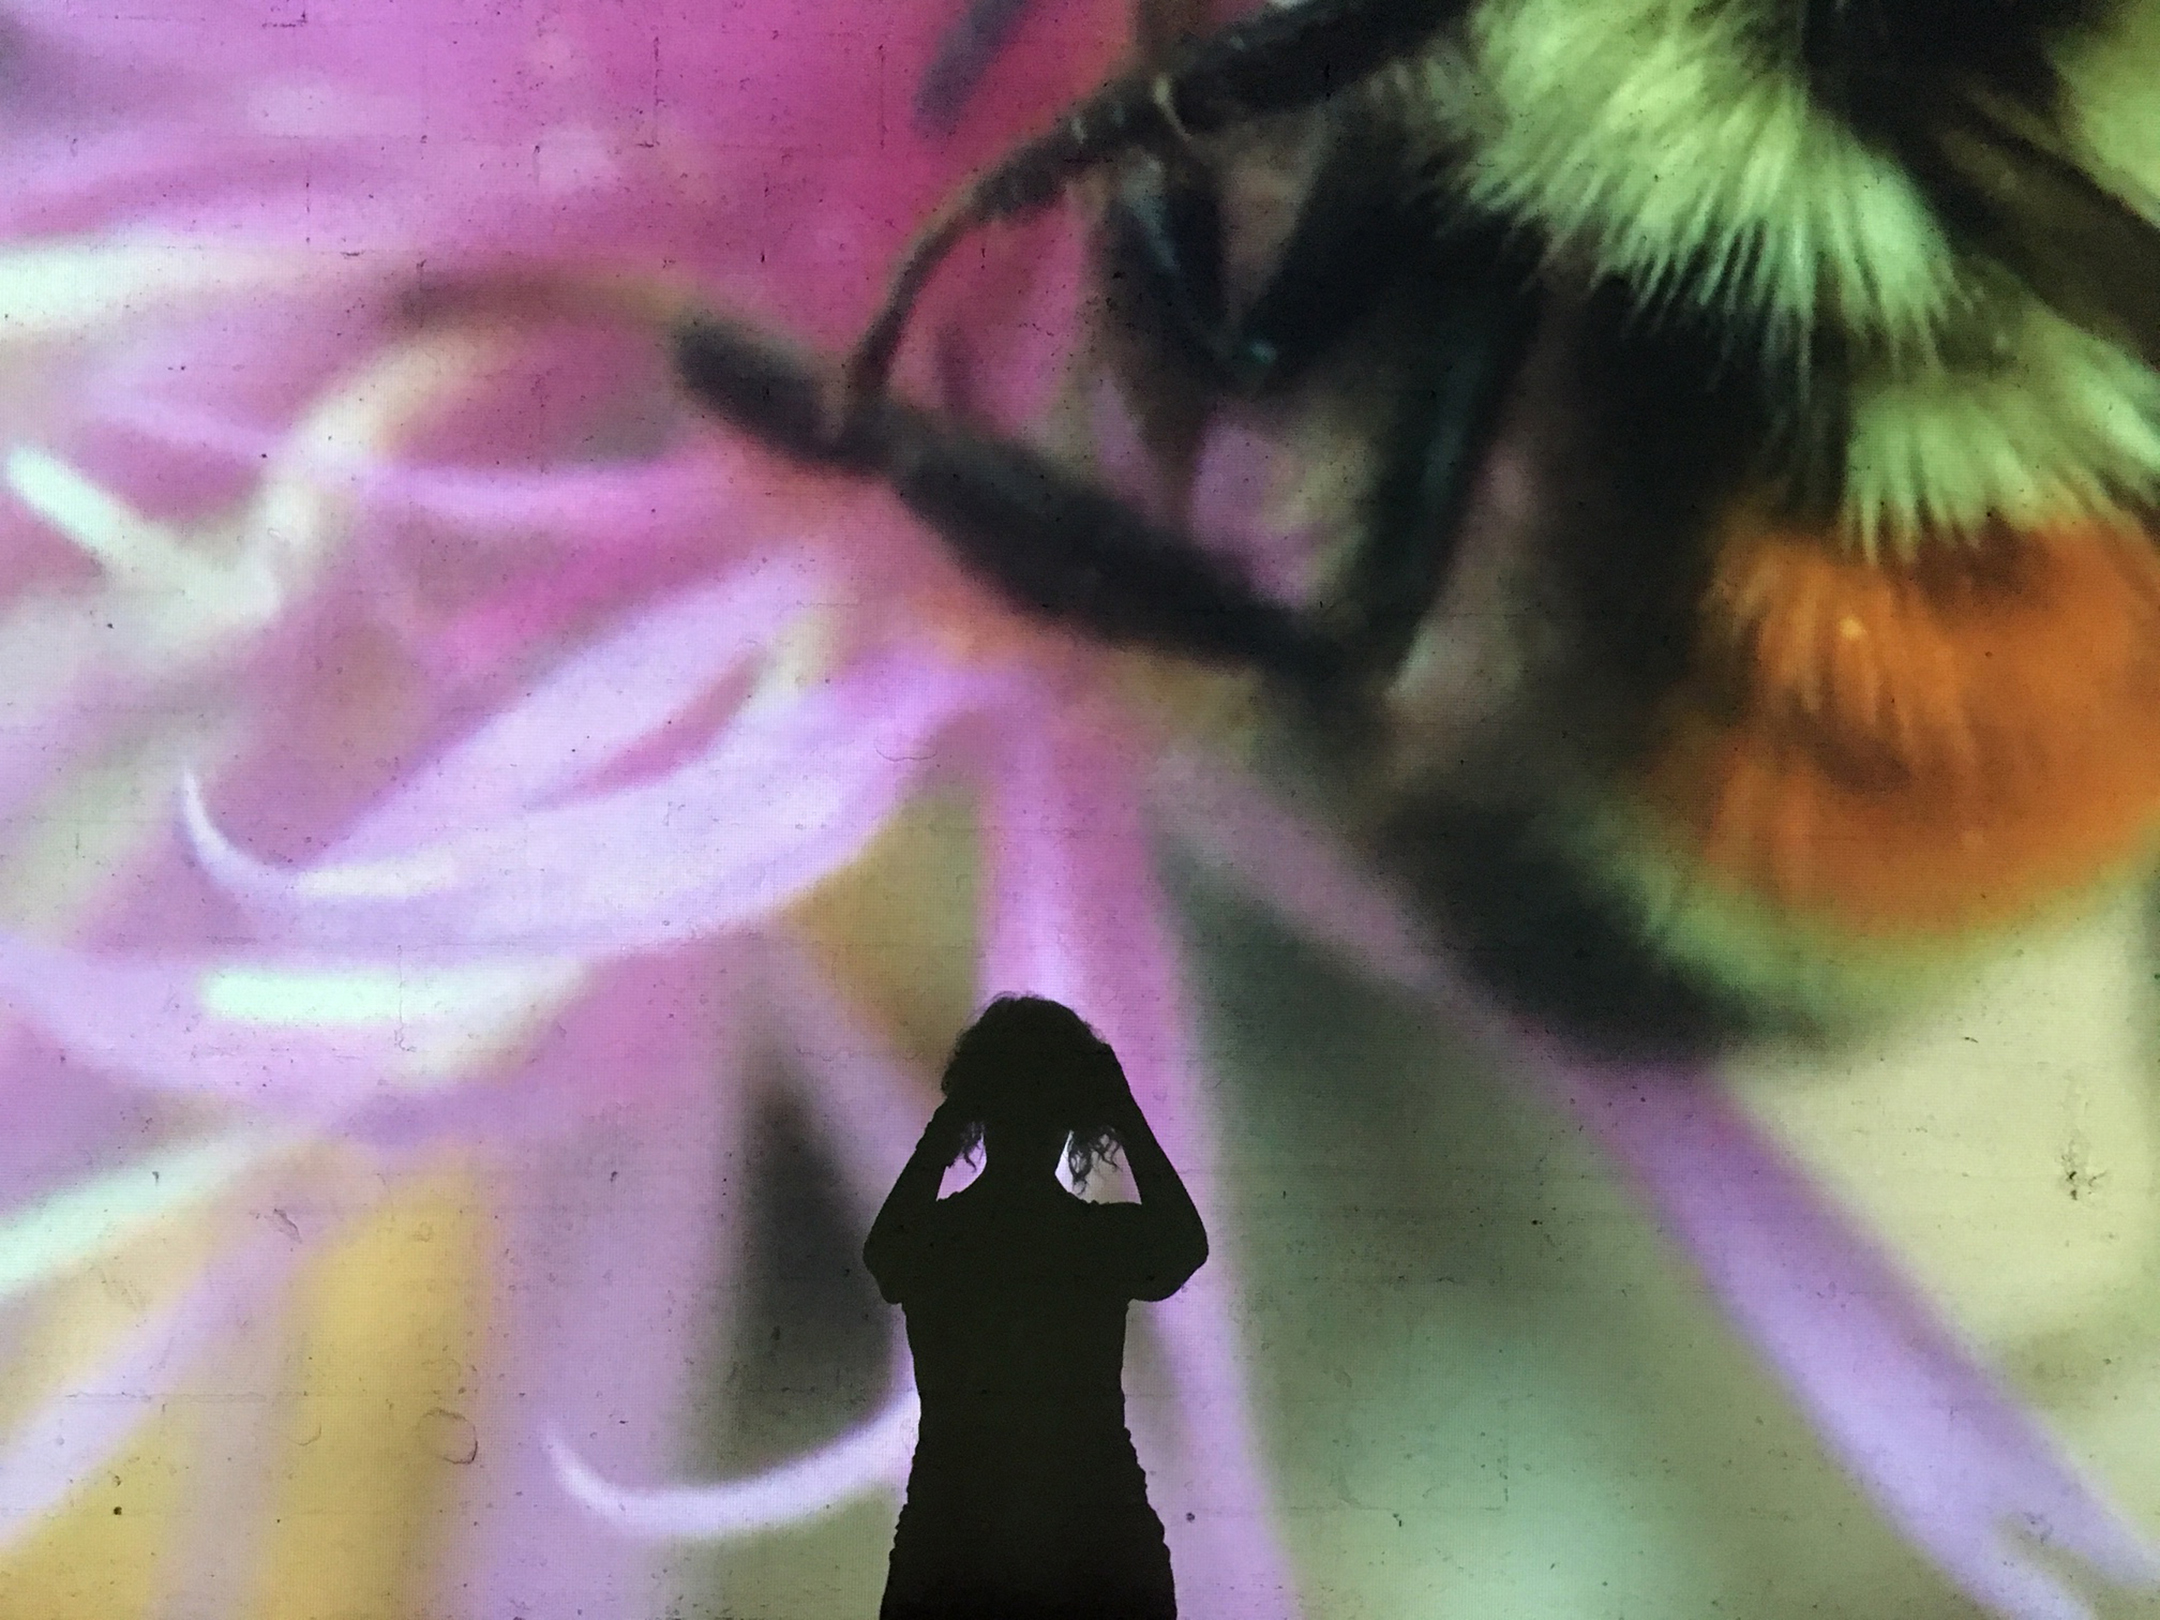 Shawn Hall, Bees In Mind, 2017, Still from Video loop with sound, shot from within installation (shadow not on loop). Video running time: 01:47:25. Image courtesy the artist.